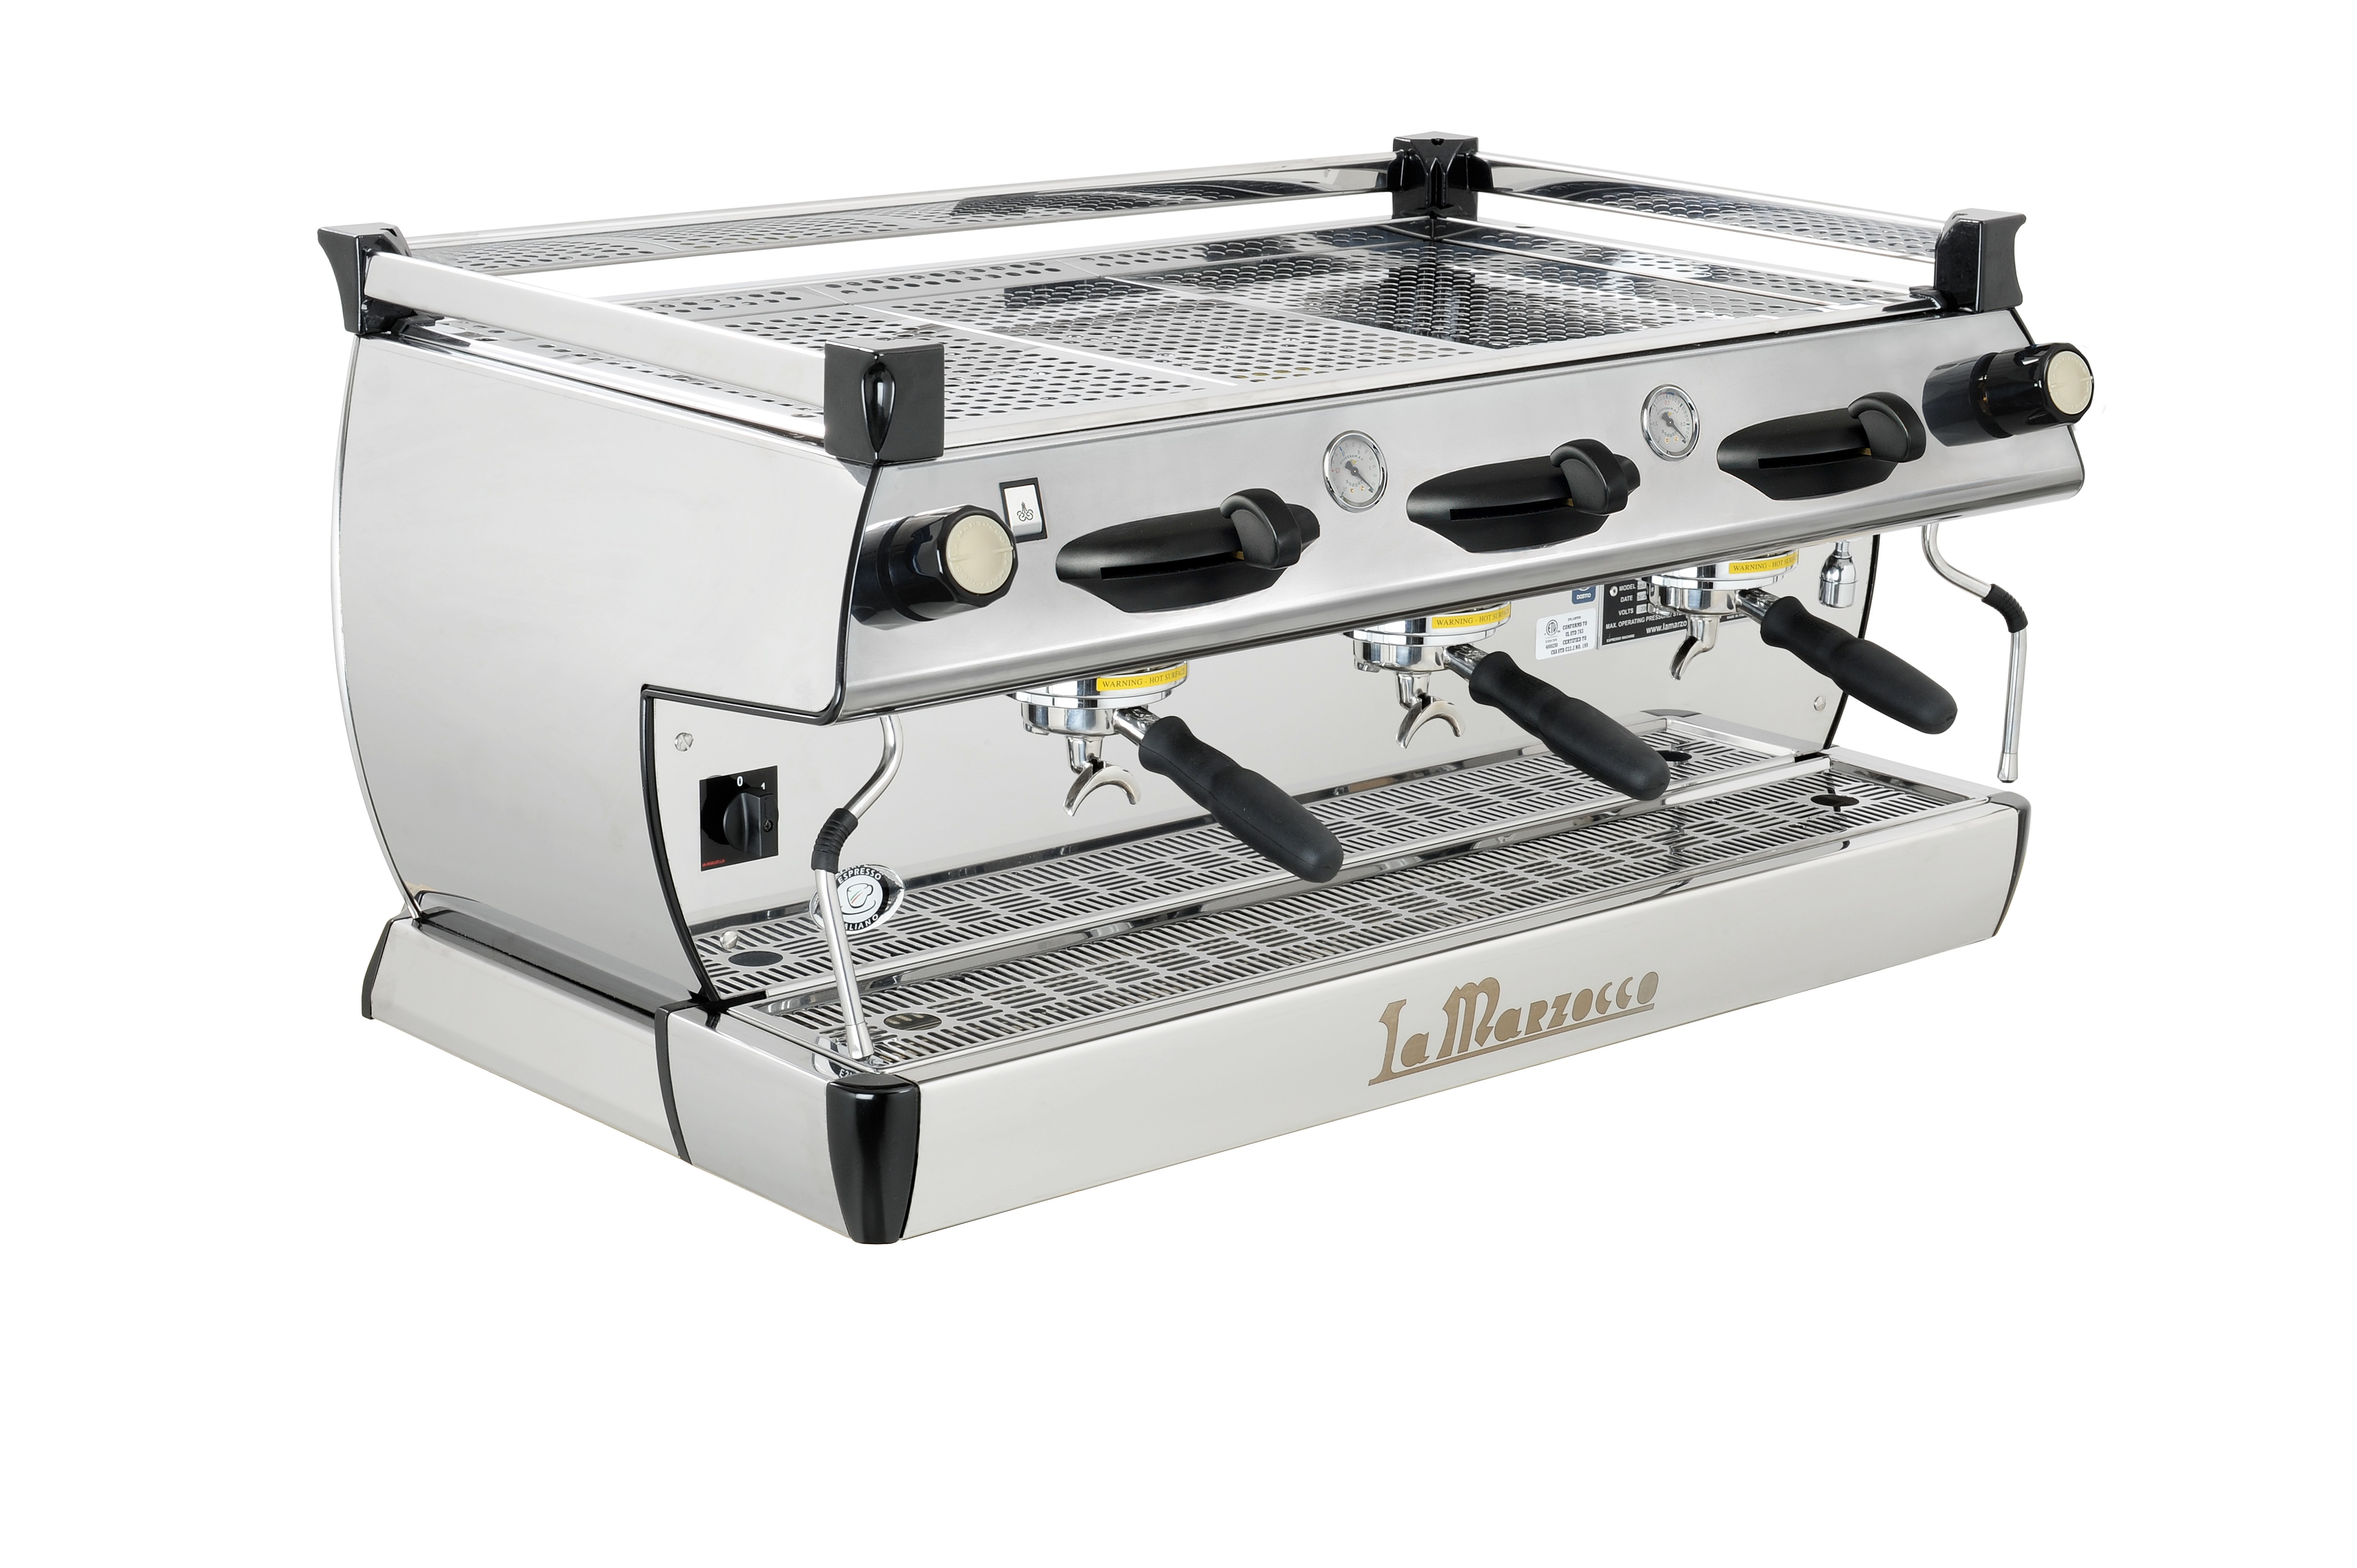 La Marzocco GB5 Commercial Coffee Machines With Free Shipping